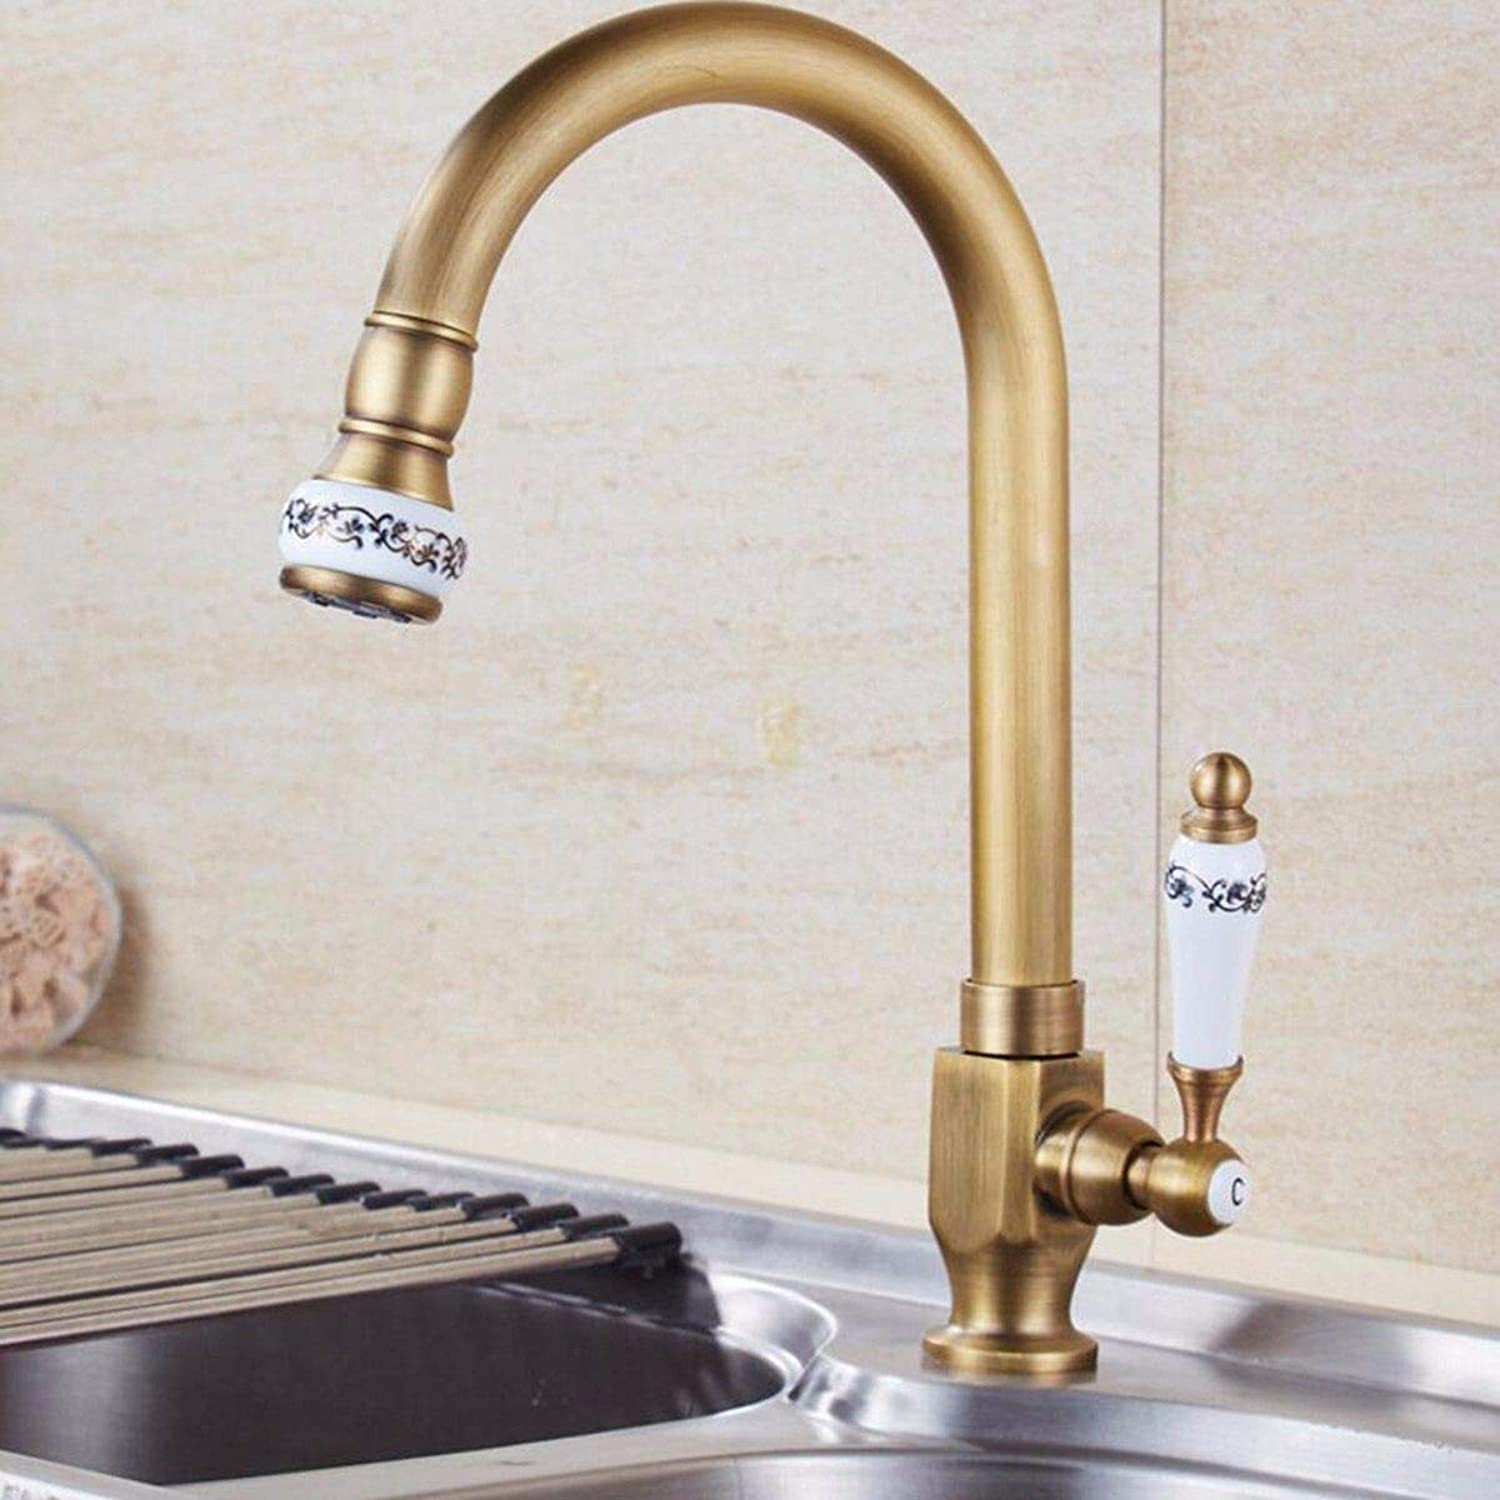 MulFaucet Antique Kitchen Single Cold Faucet Sitting Sink Sink Balcony Laundry Pool redatable Continental Single Cold Faucet